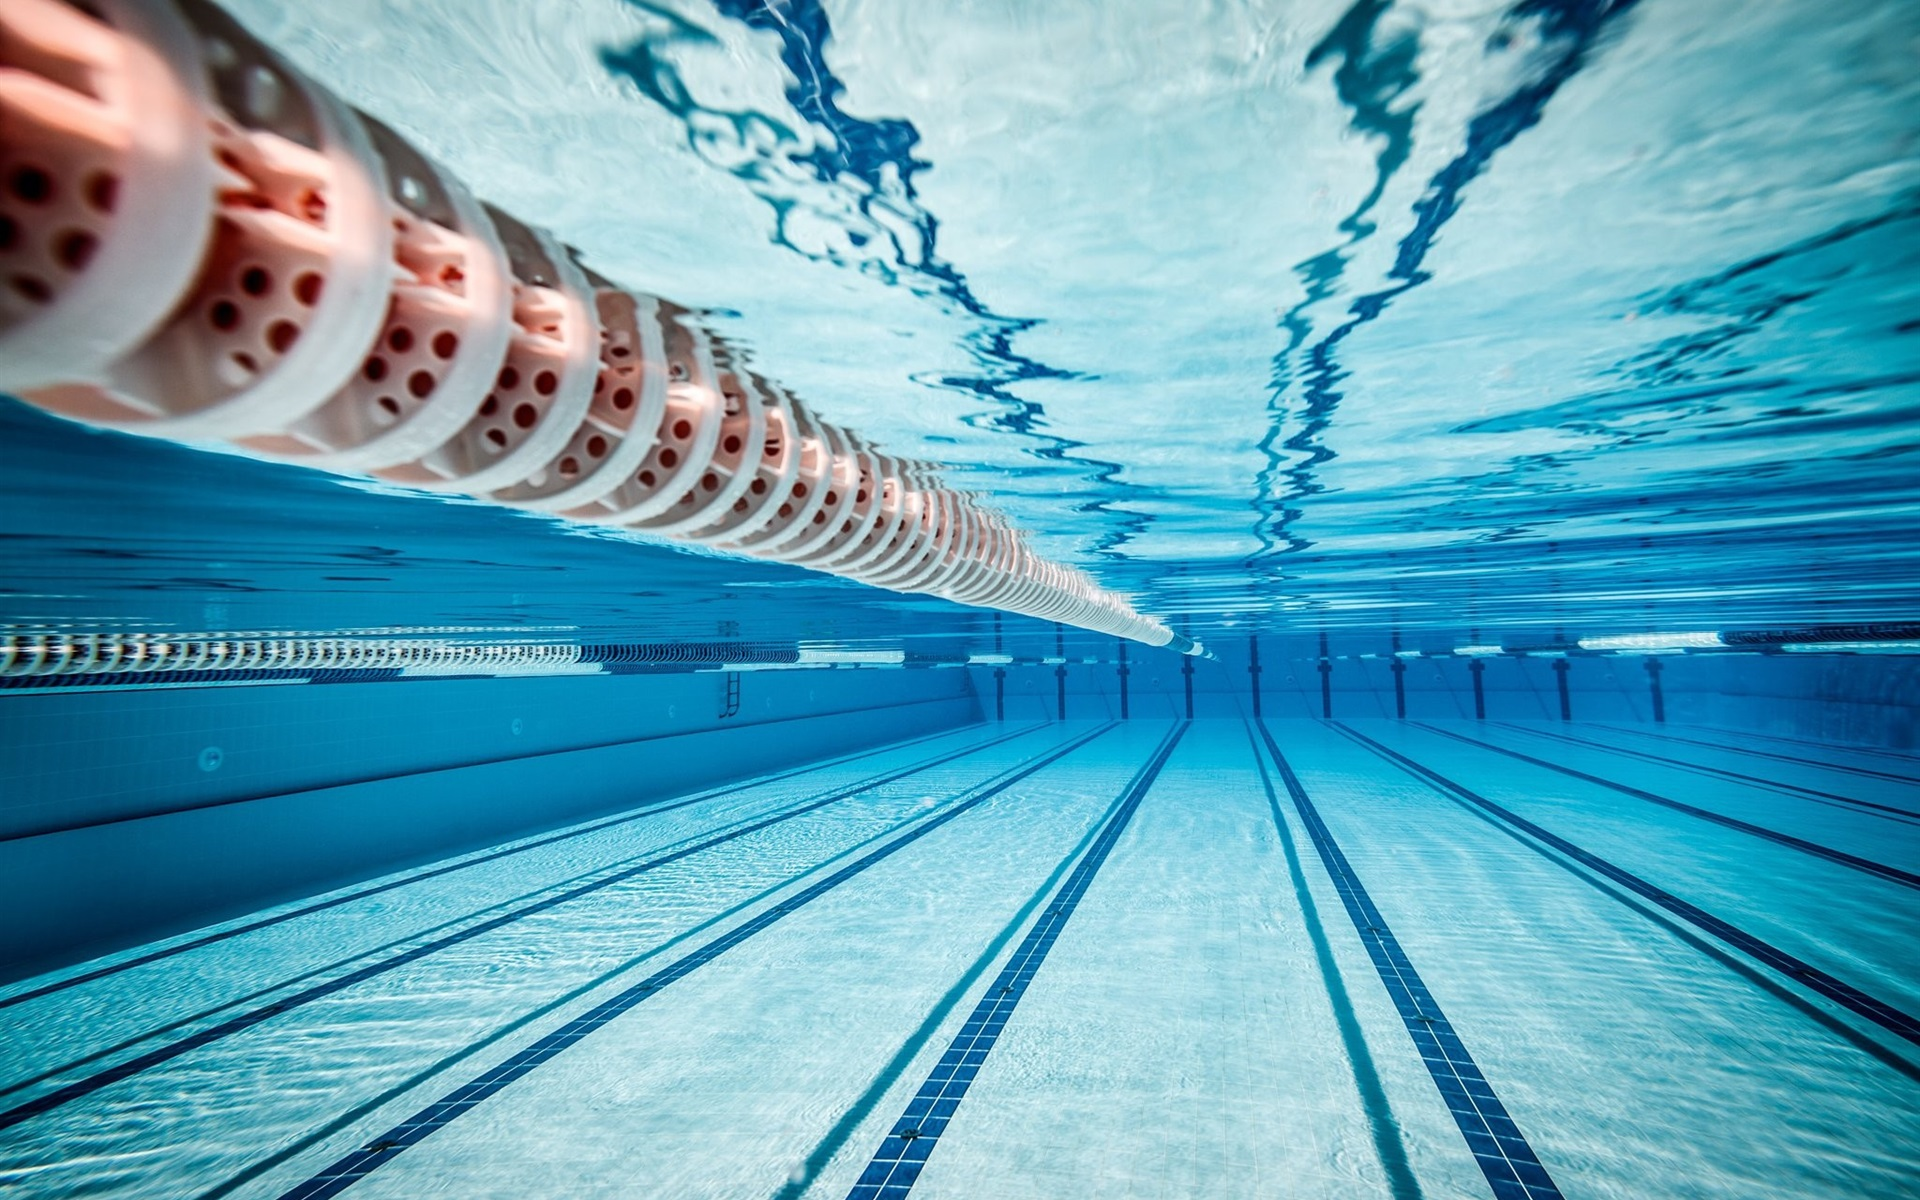 olympic swimming pool underwater. Brilliant Pool Download This Wallpaper For Olympic Swimming Pool Underwater